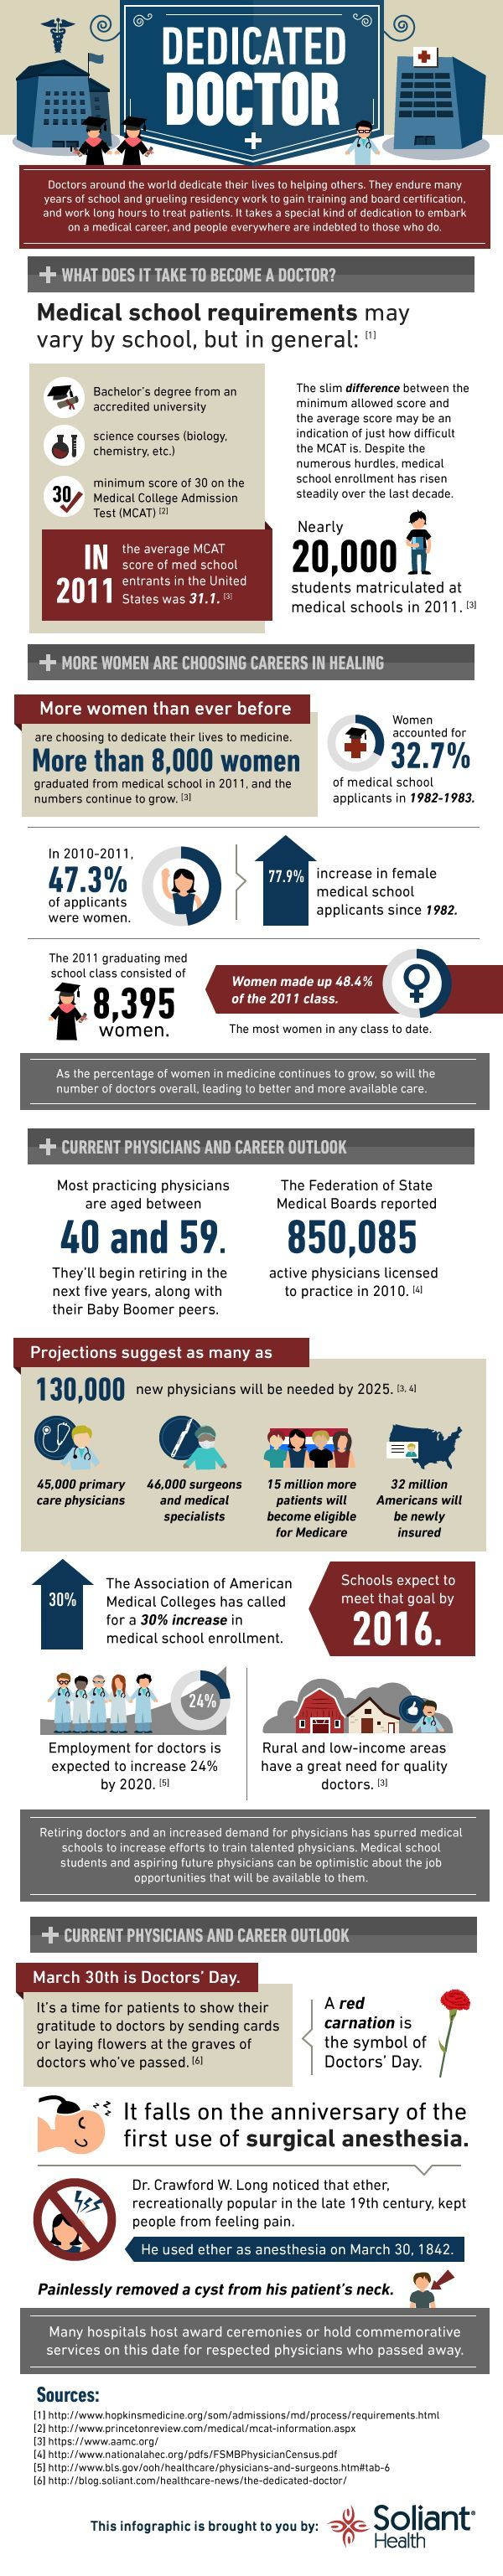 #Infographic: What does it take to be a #doctor? :: Check out this infographic from Soliant Health to see the dedication it takes to be a doctor and the needs for the profession. #hcsm